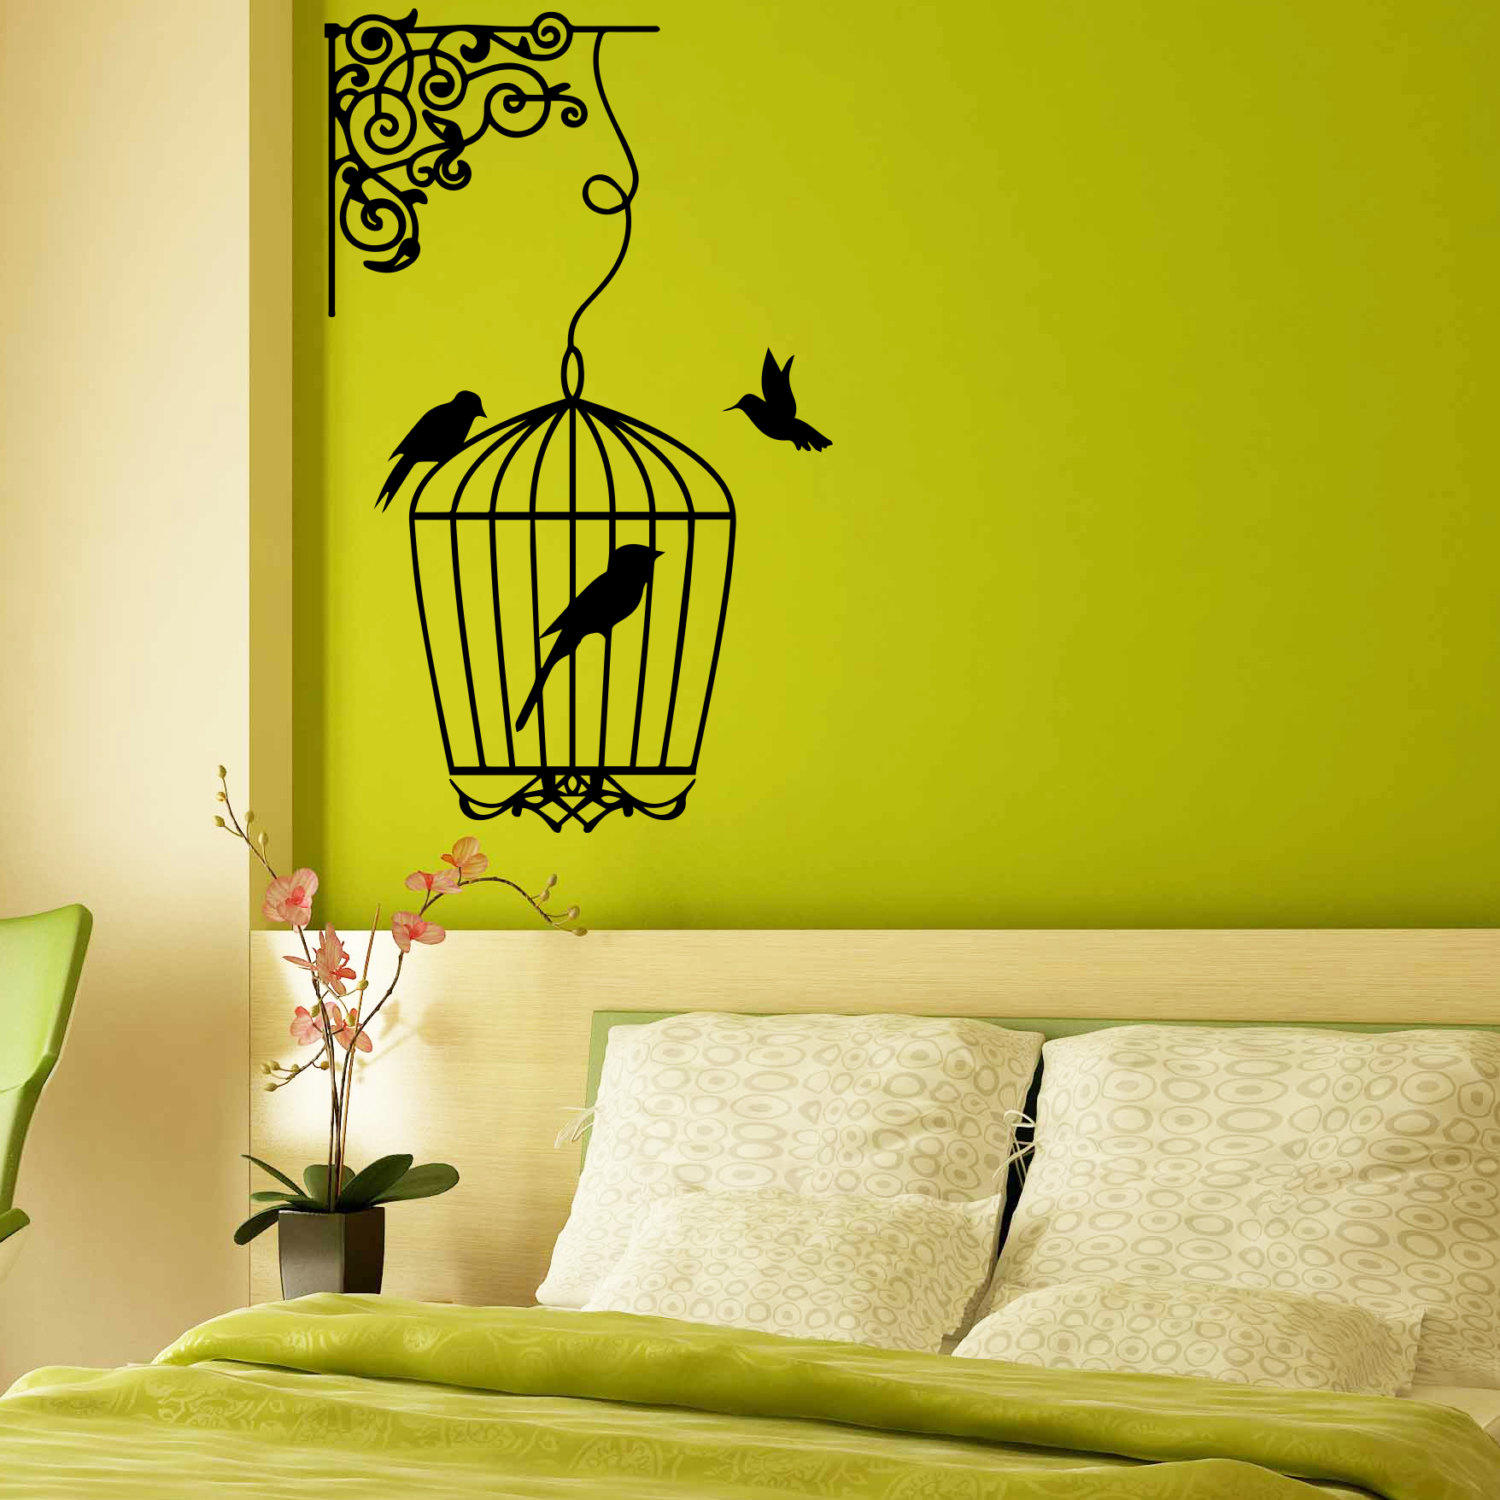 Wall Decal Bird Cages With Birds Design Wall Decals Childrens Bedroom  Living Baby Room Vinyl Stickers Animals Home Decor Murals 3841